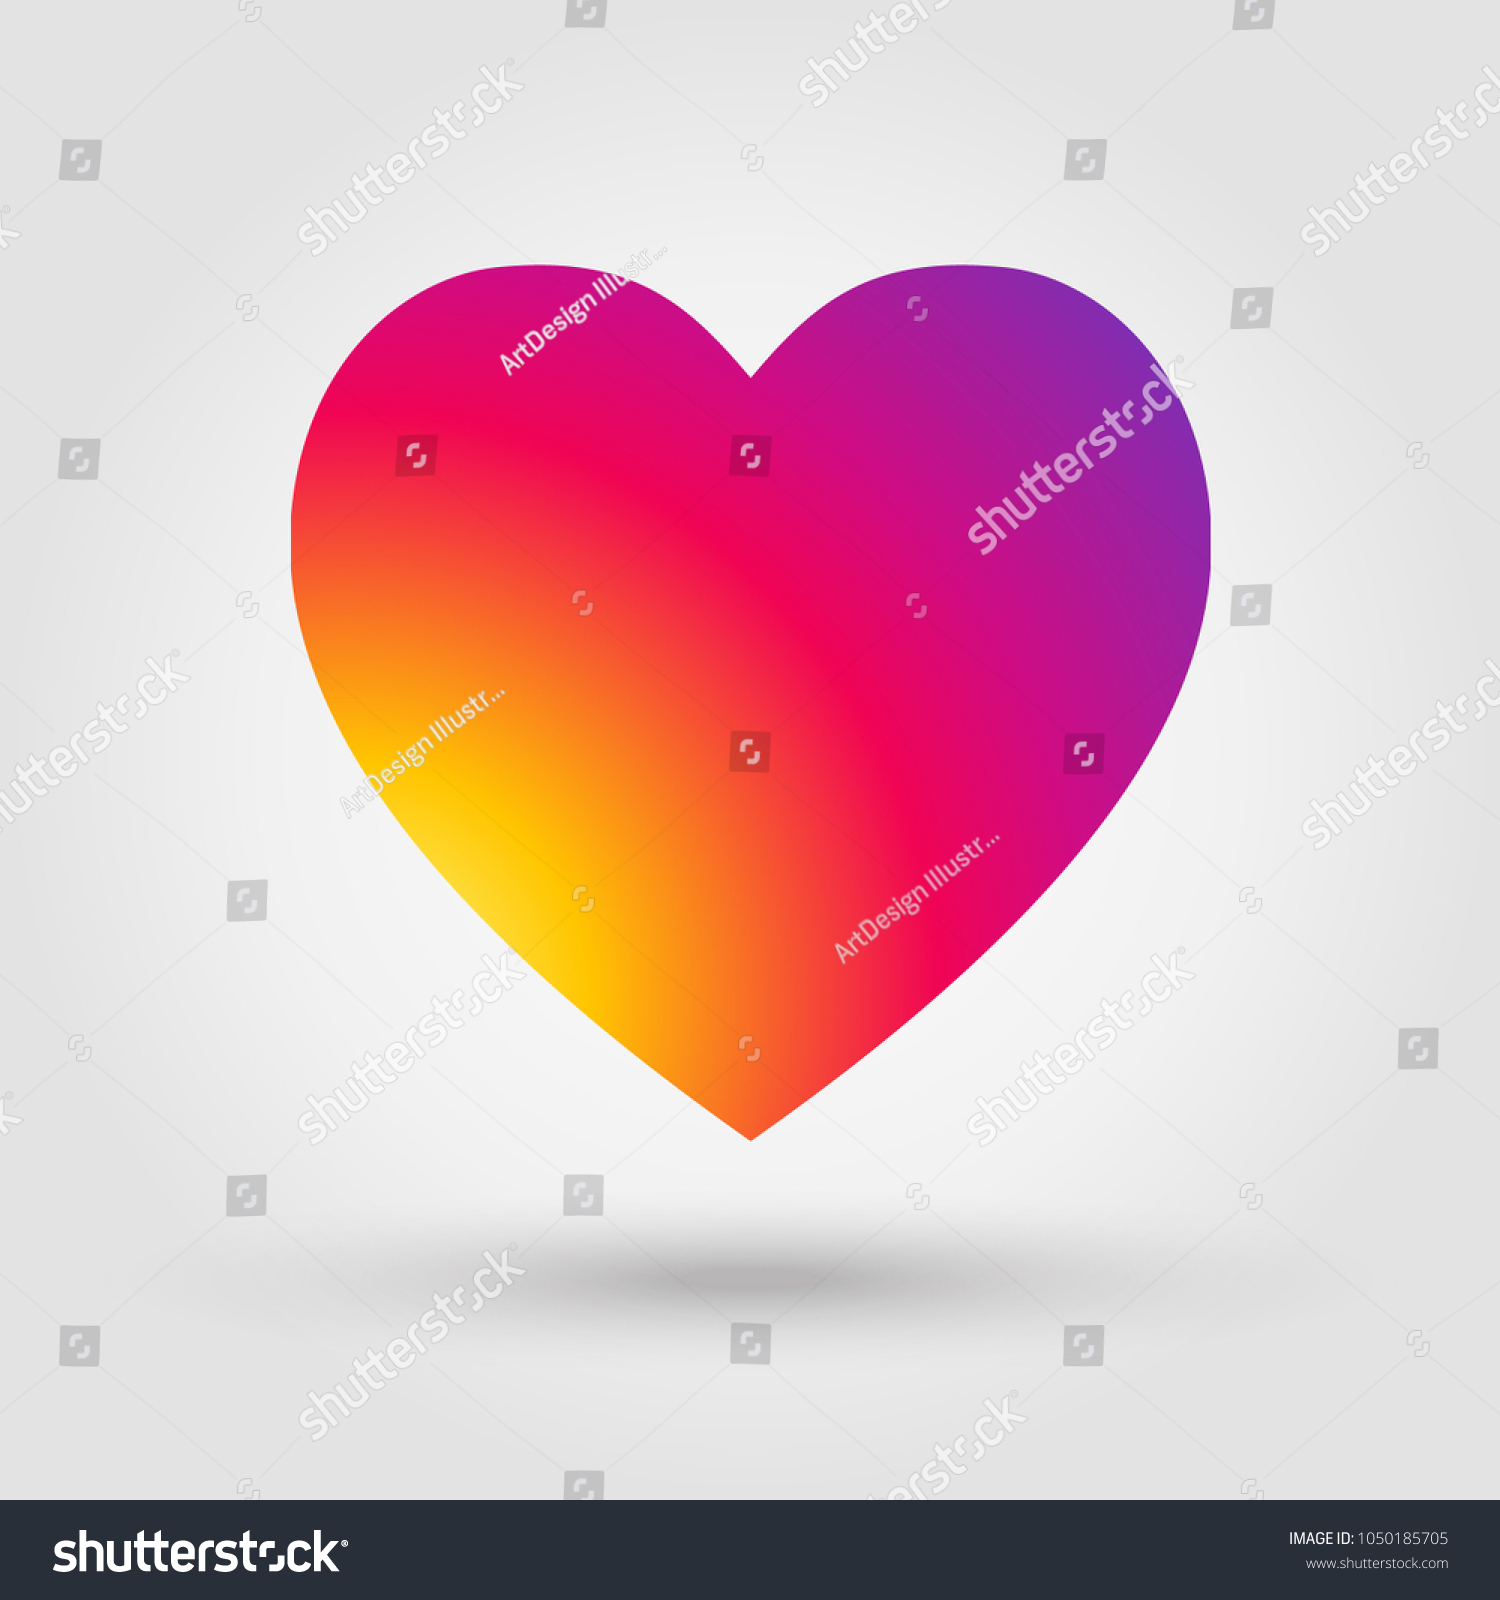 Heart Isolated Colorful Illustration Instagram Heart Stock